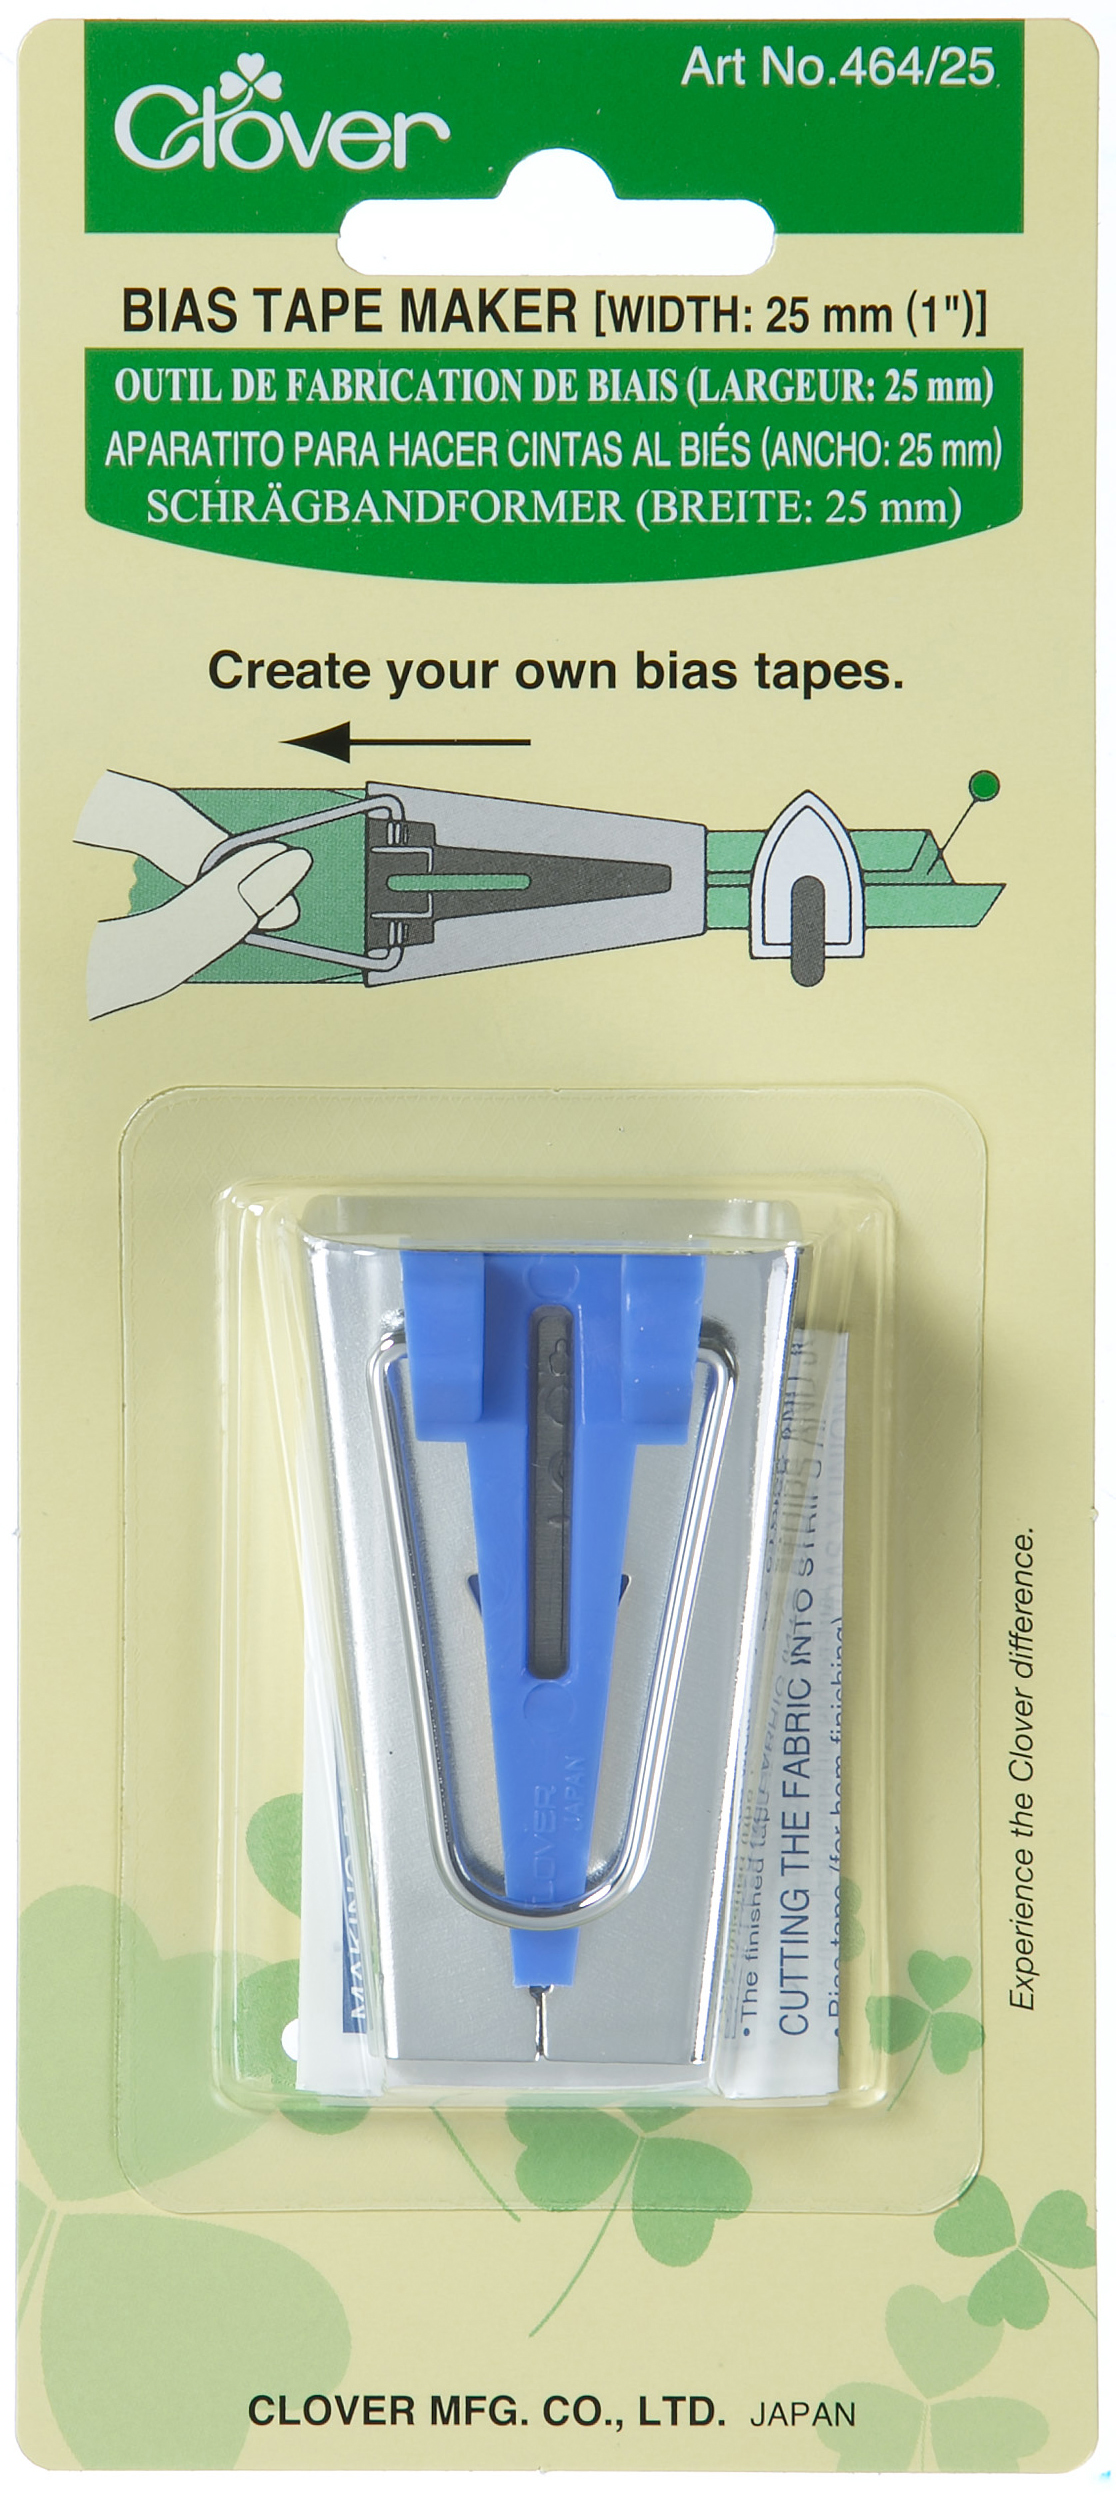 Learn how to make bias tape making tips by Nancy Zieman Productions